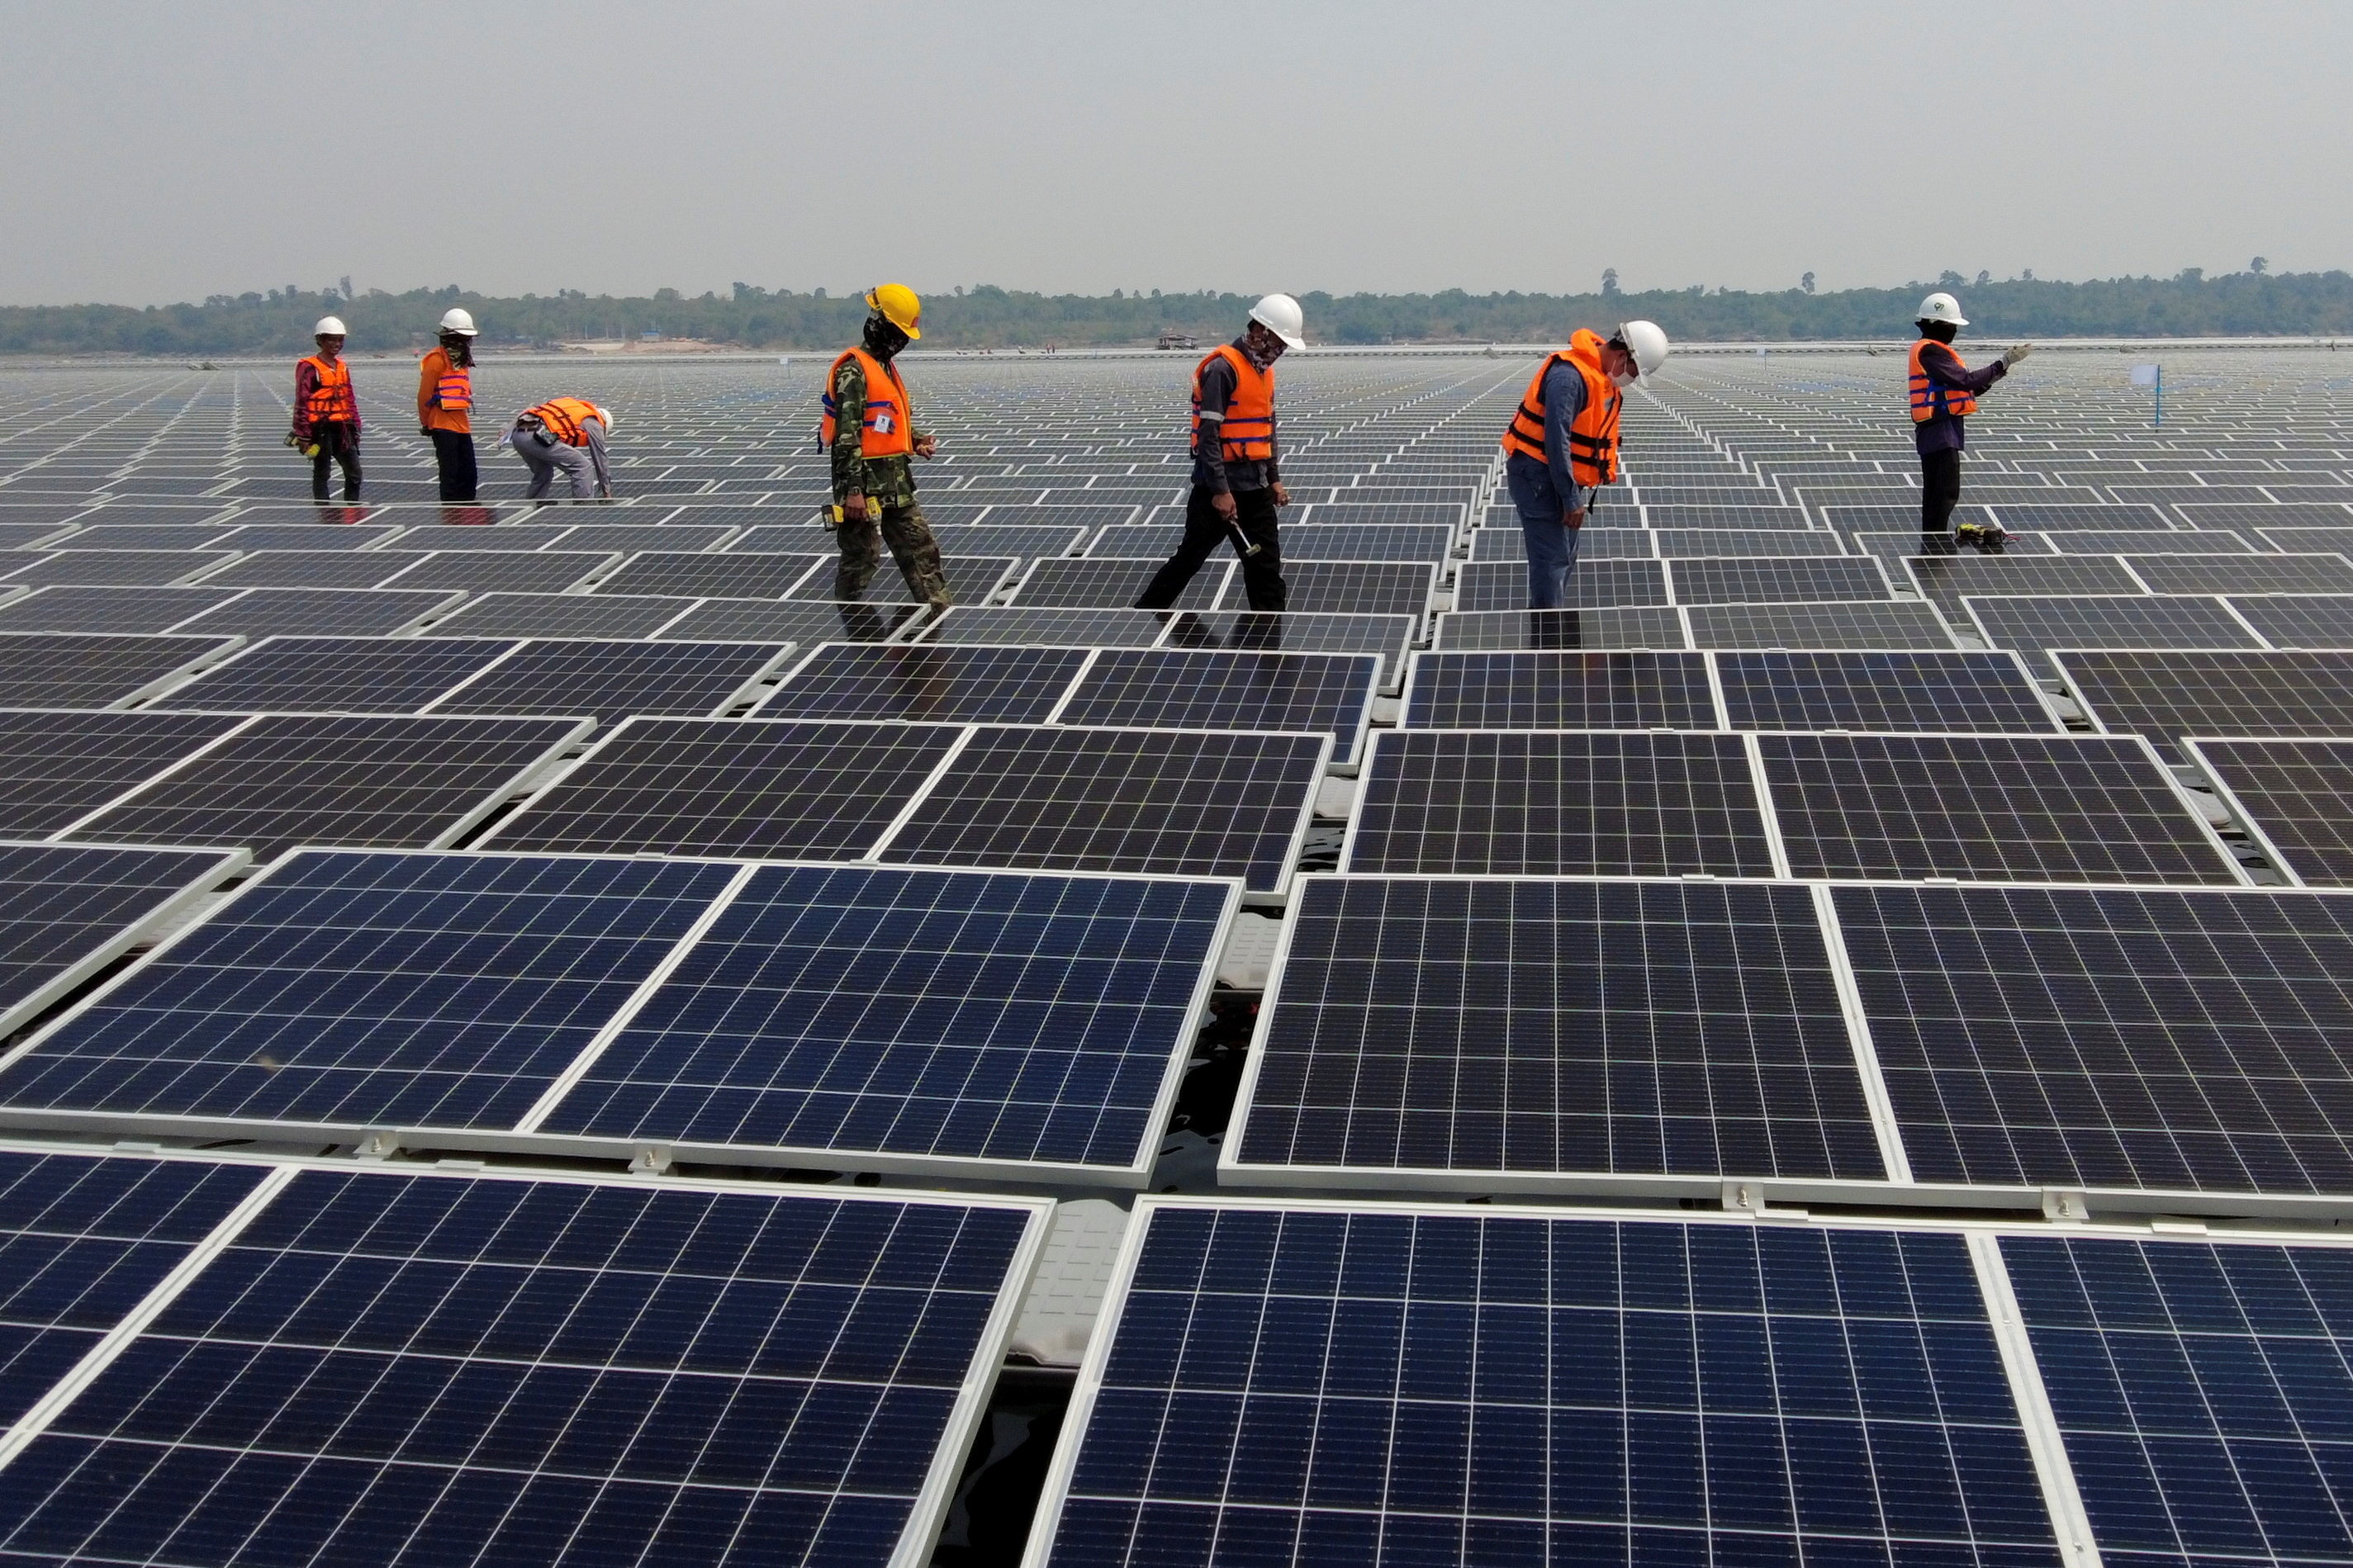 image of workers walking between solar cell panels over the water surface of Sirindhorn Dam in Ubon Ratchathani, Thailand.